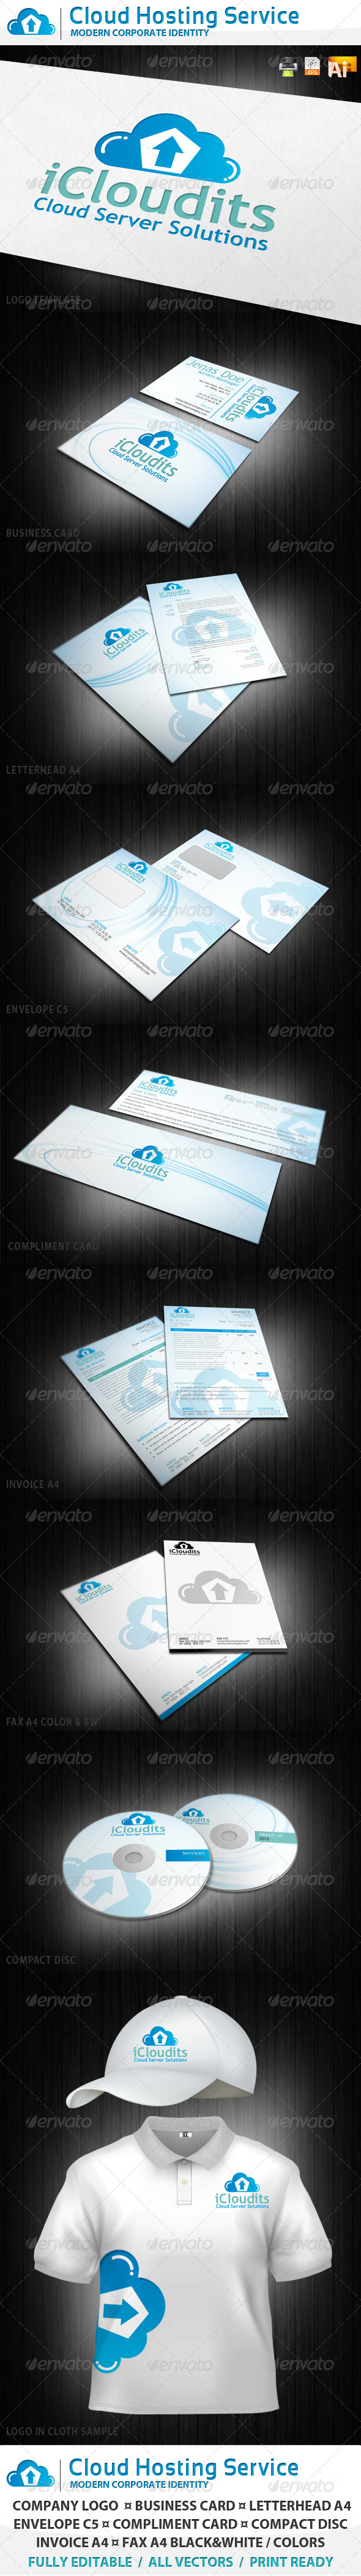 Graphic River Cloud Hosting Service Corporate Identity Print Templates -  Stationery 1048494